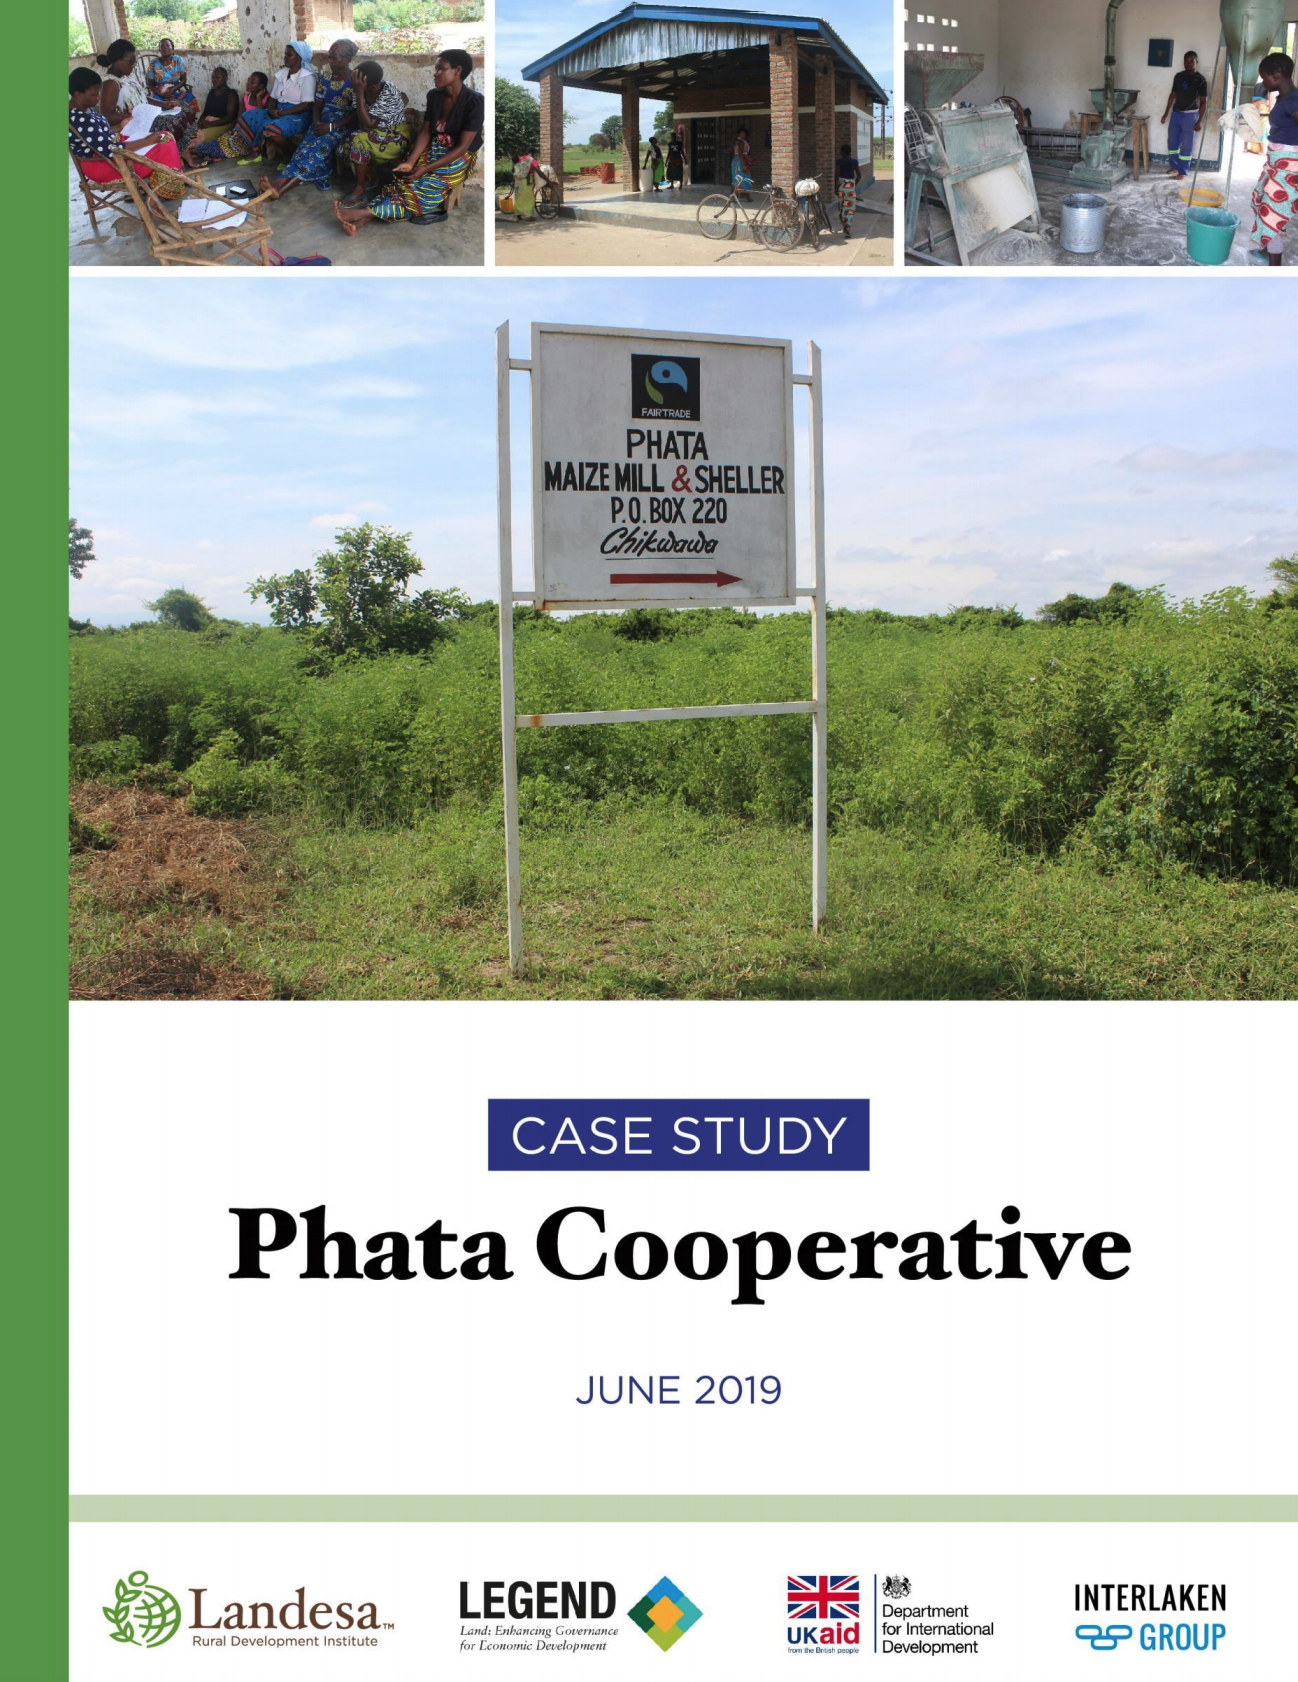 Case Study: Phata Cooperative cover image